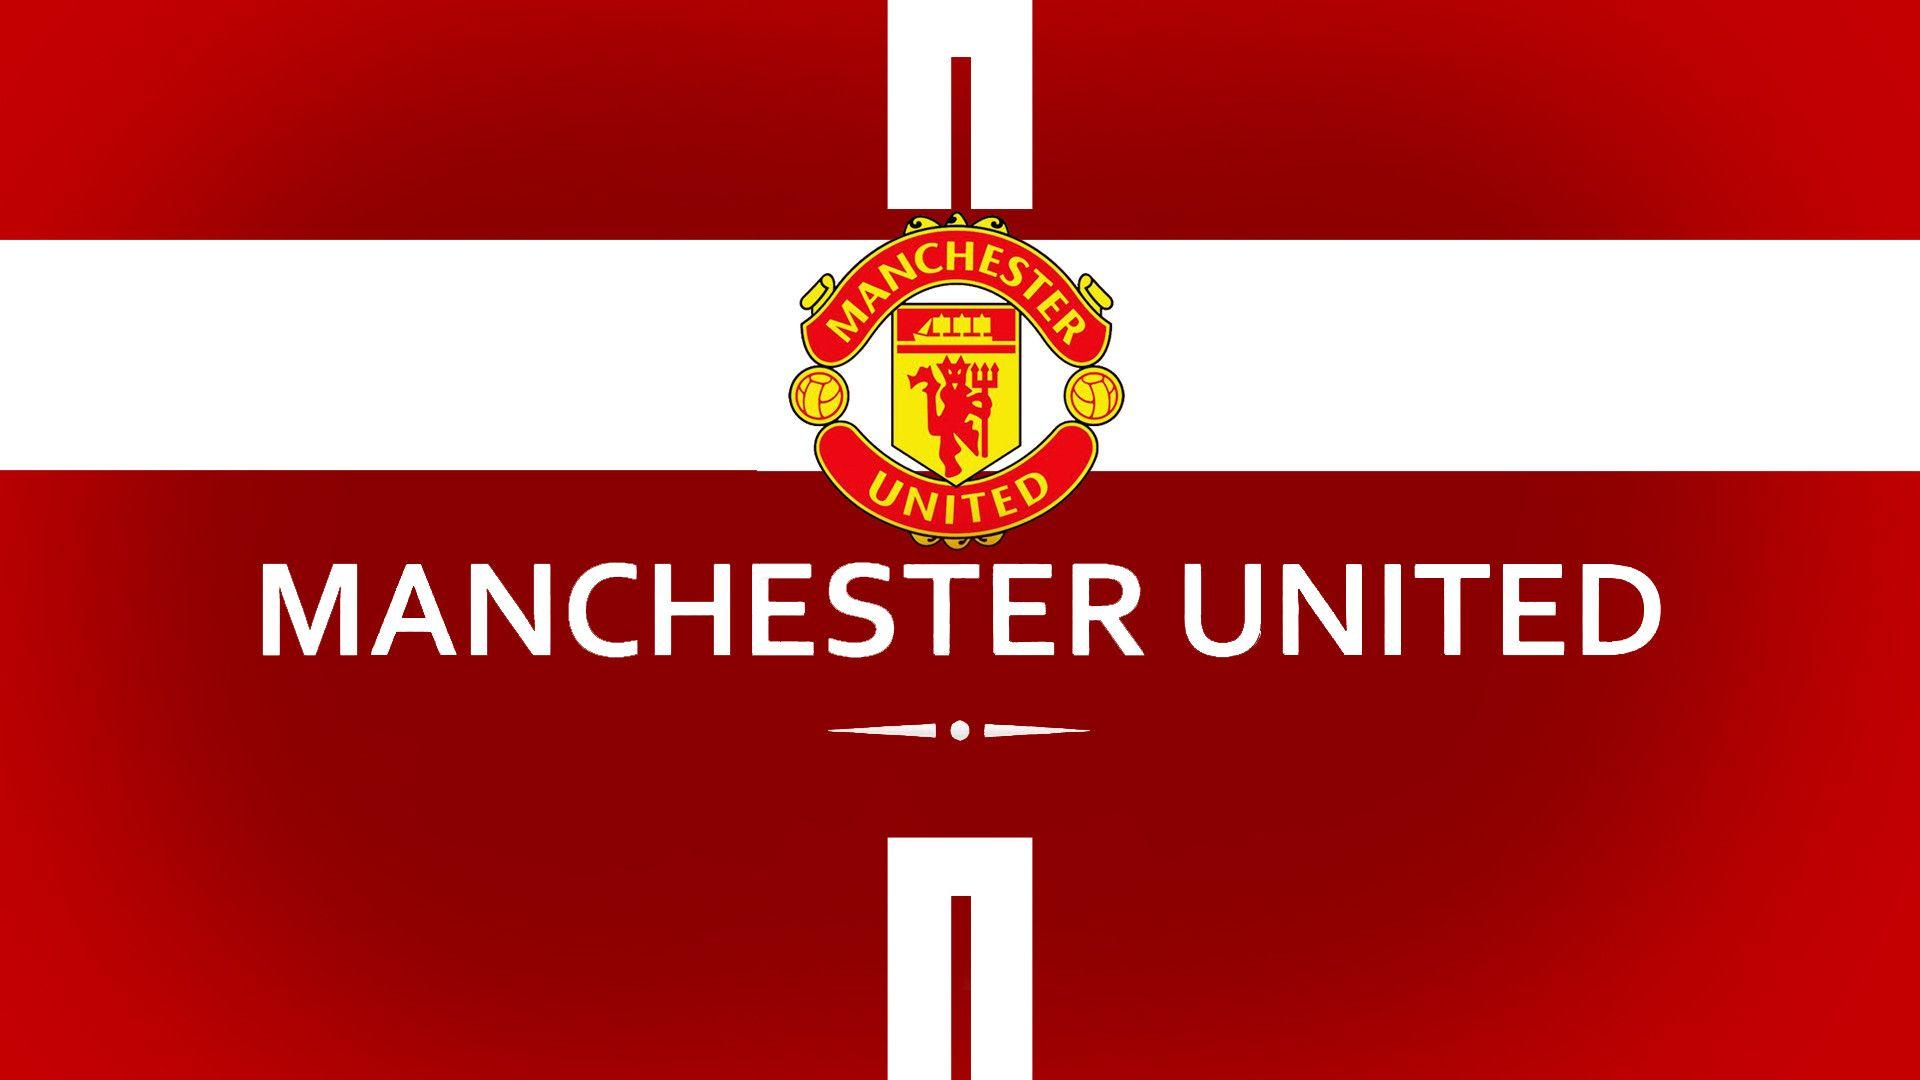 Manchester united wallpapers 2017 wallpaper cave manchester united wallpapers hd wallpaper cave voltagebd